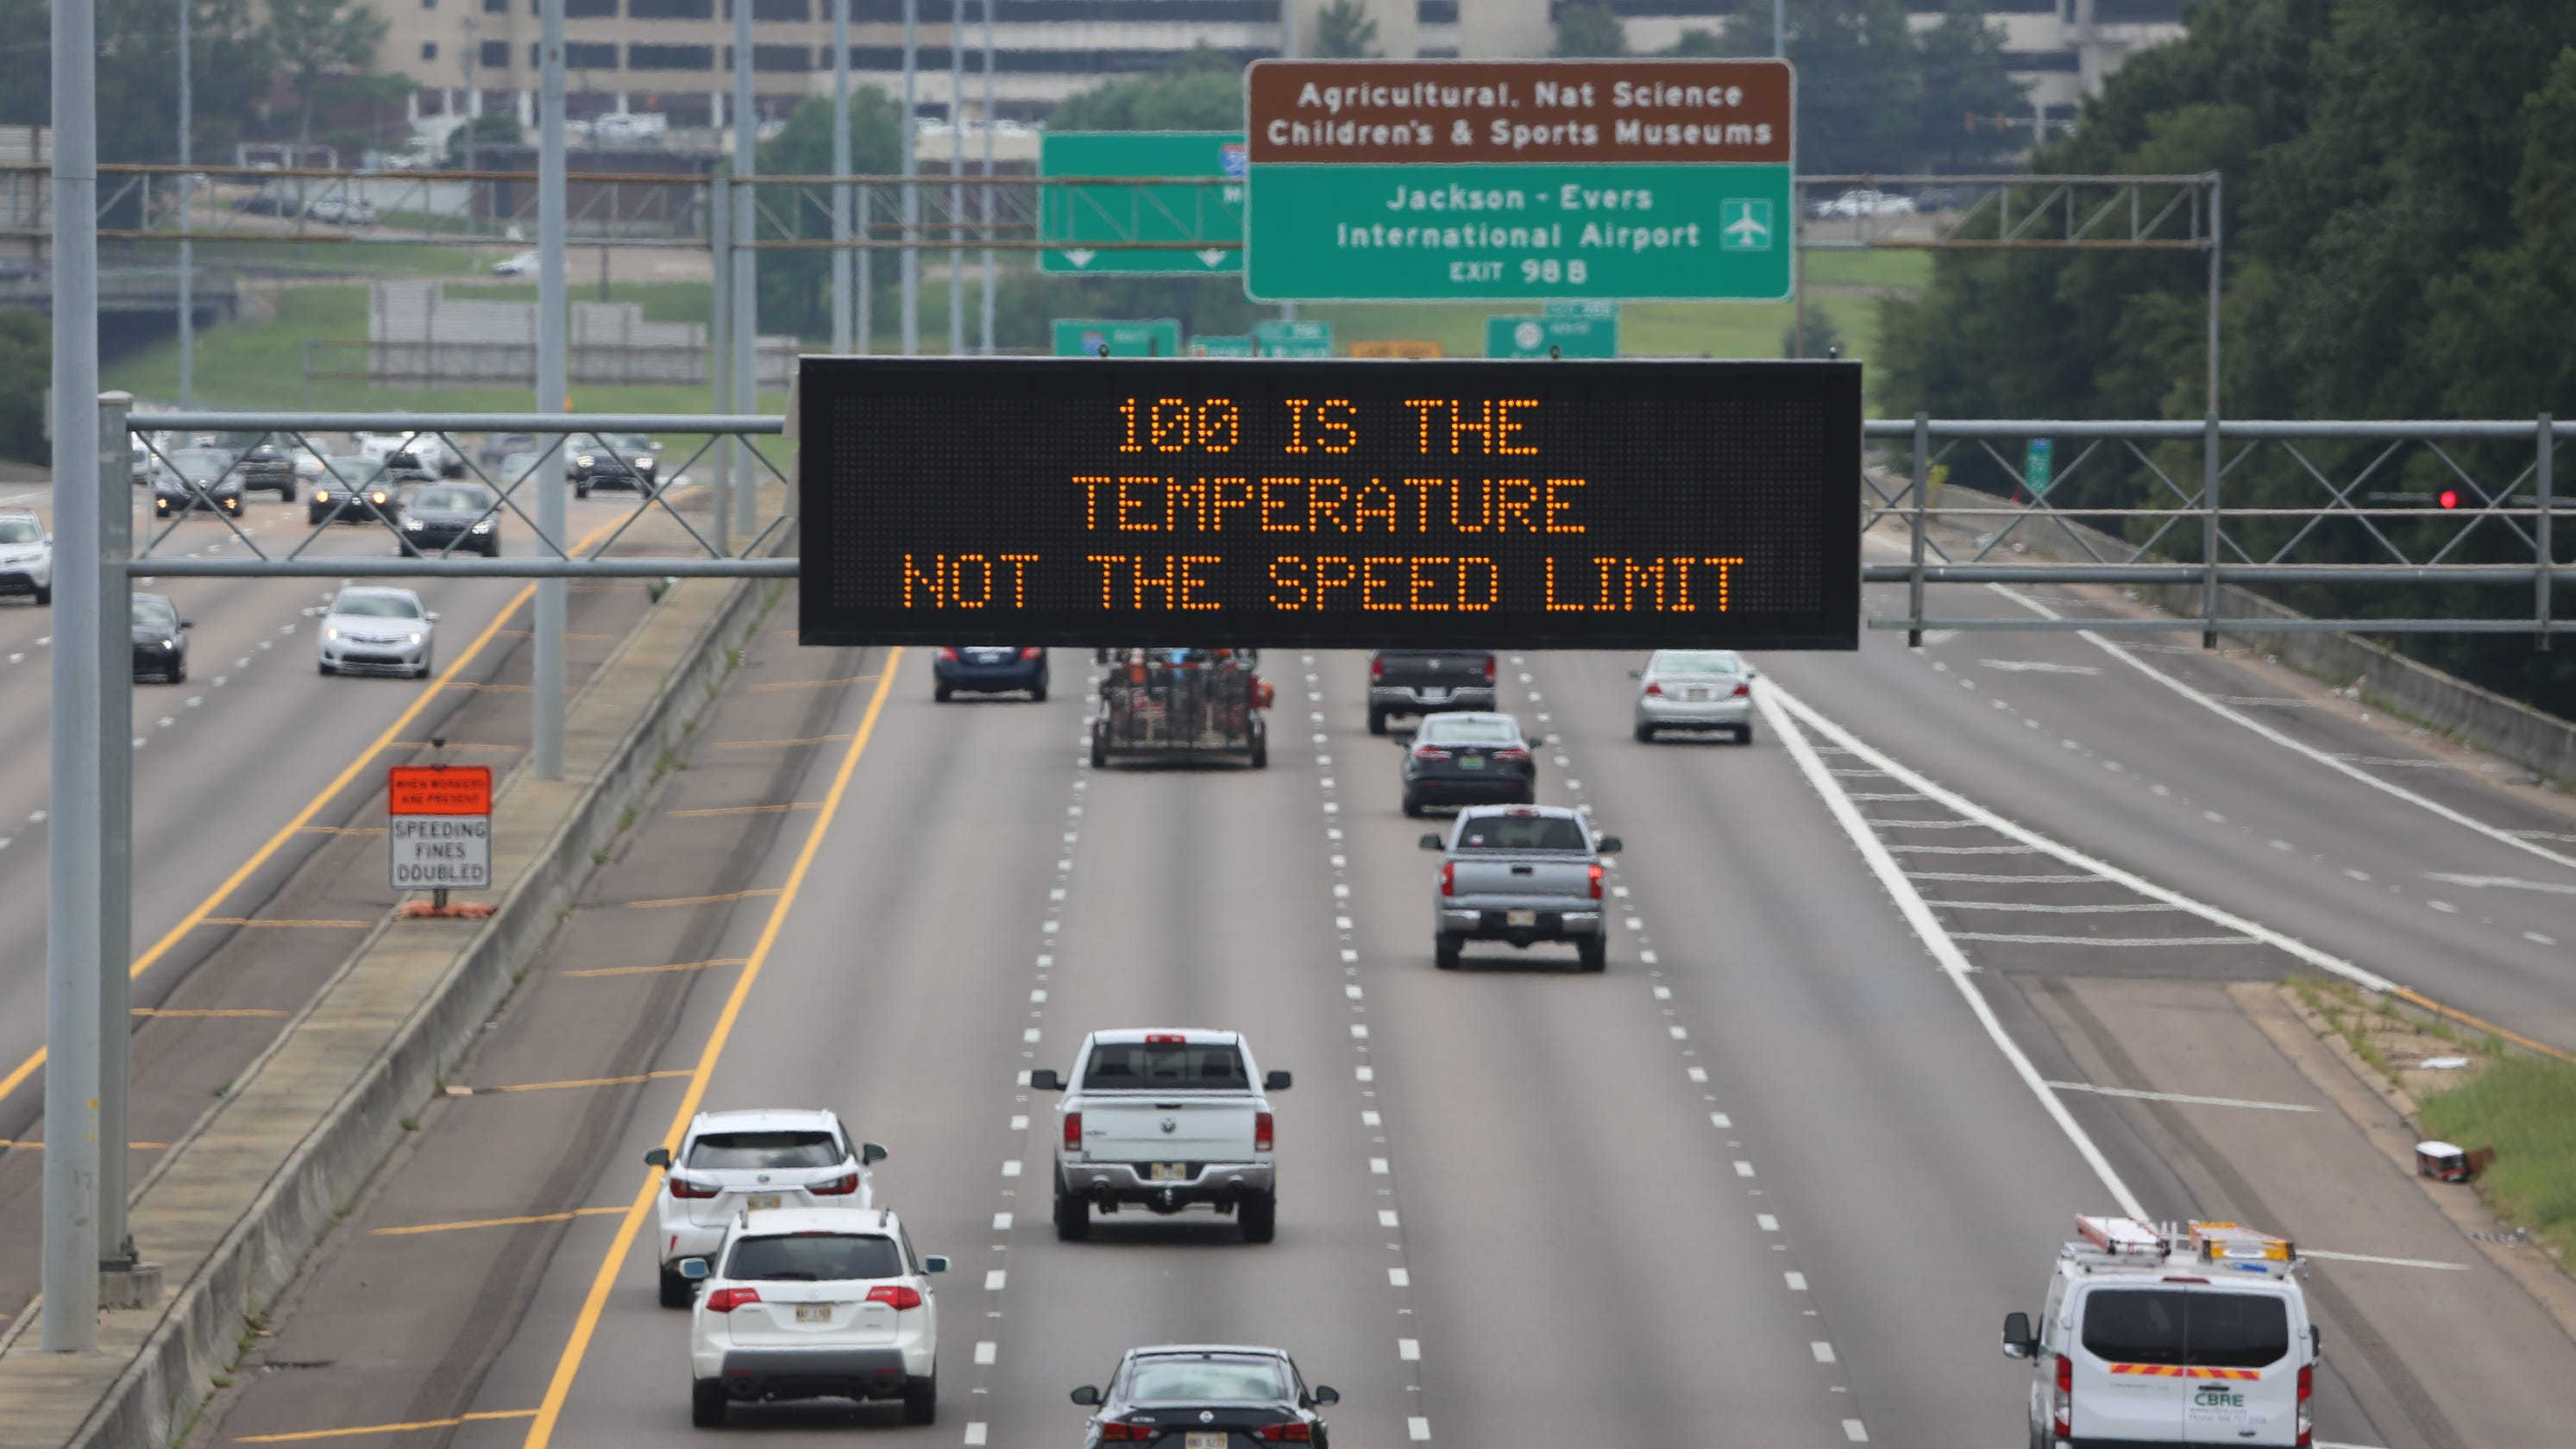 Cousin Eddie, other MDOT highway signs a hit with drivers. Here's who's behind them.